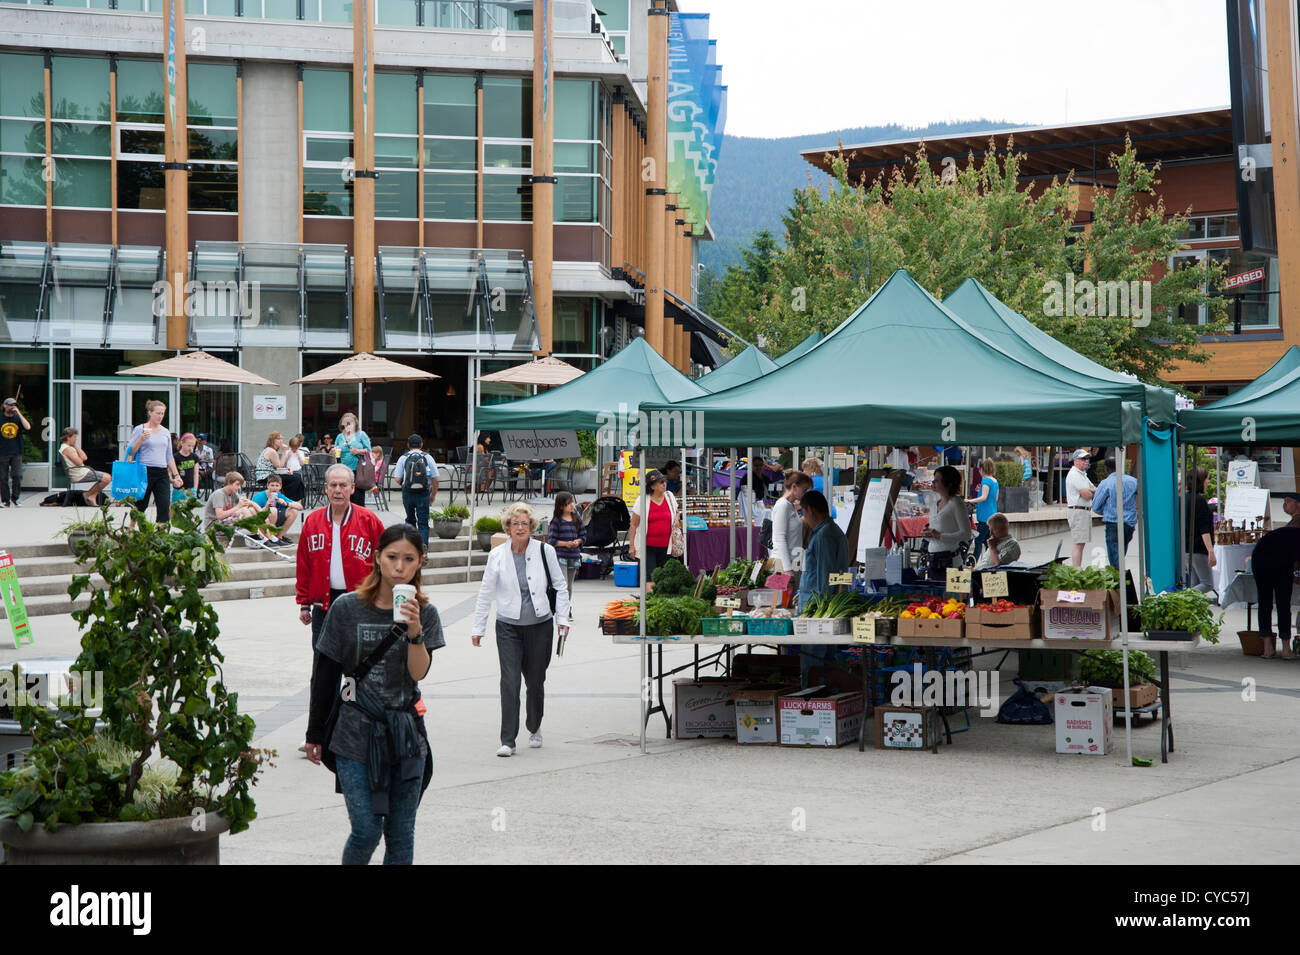 Public farmer's market in a square in the suburbs selling local produce and other crafts, North Vancouver, BC, - Stock Image